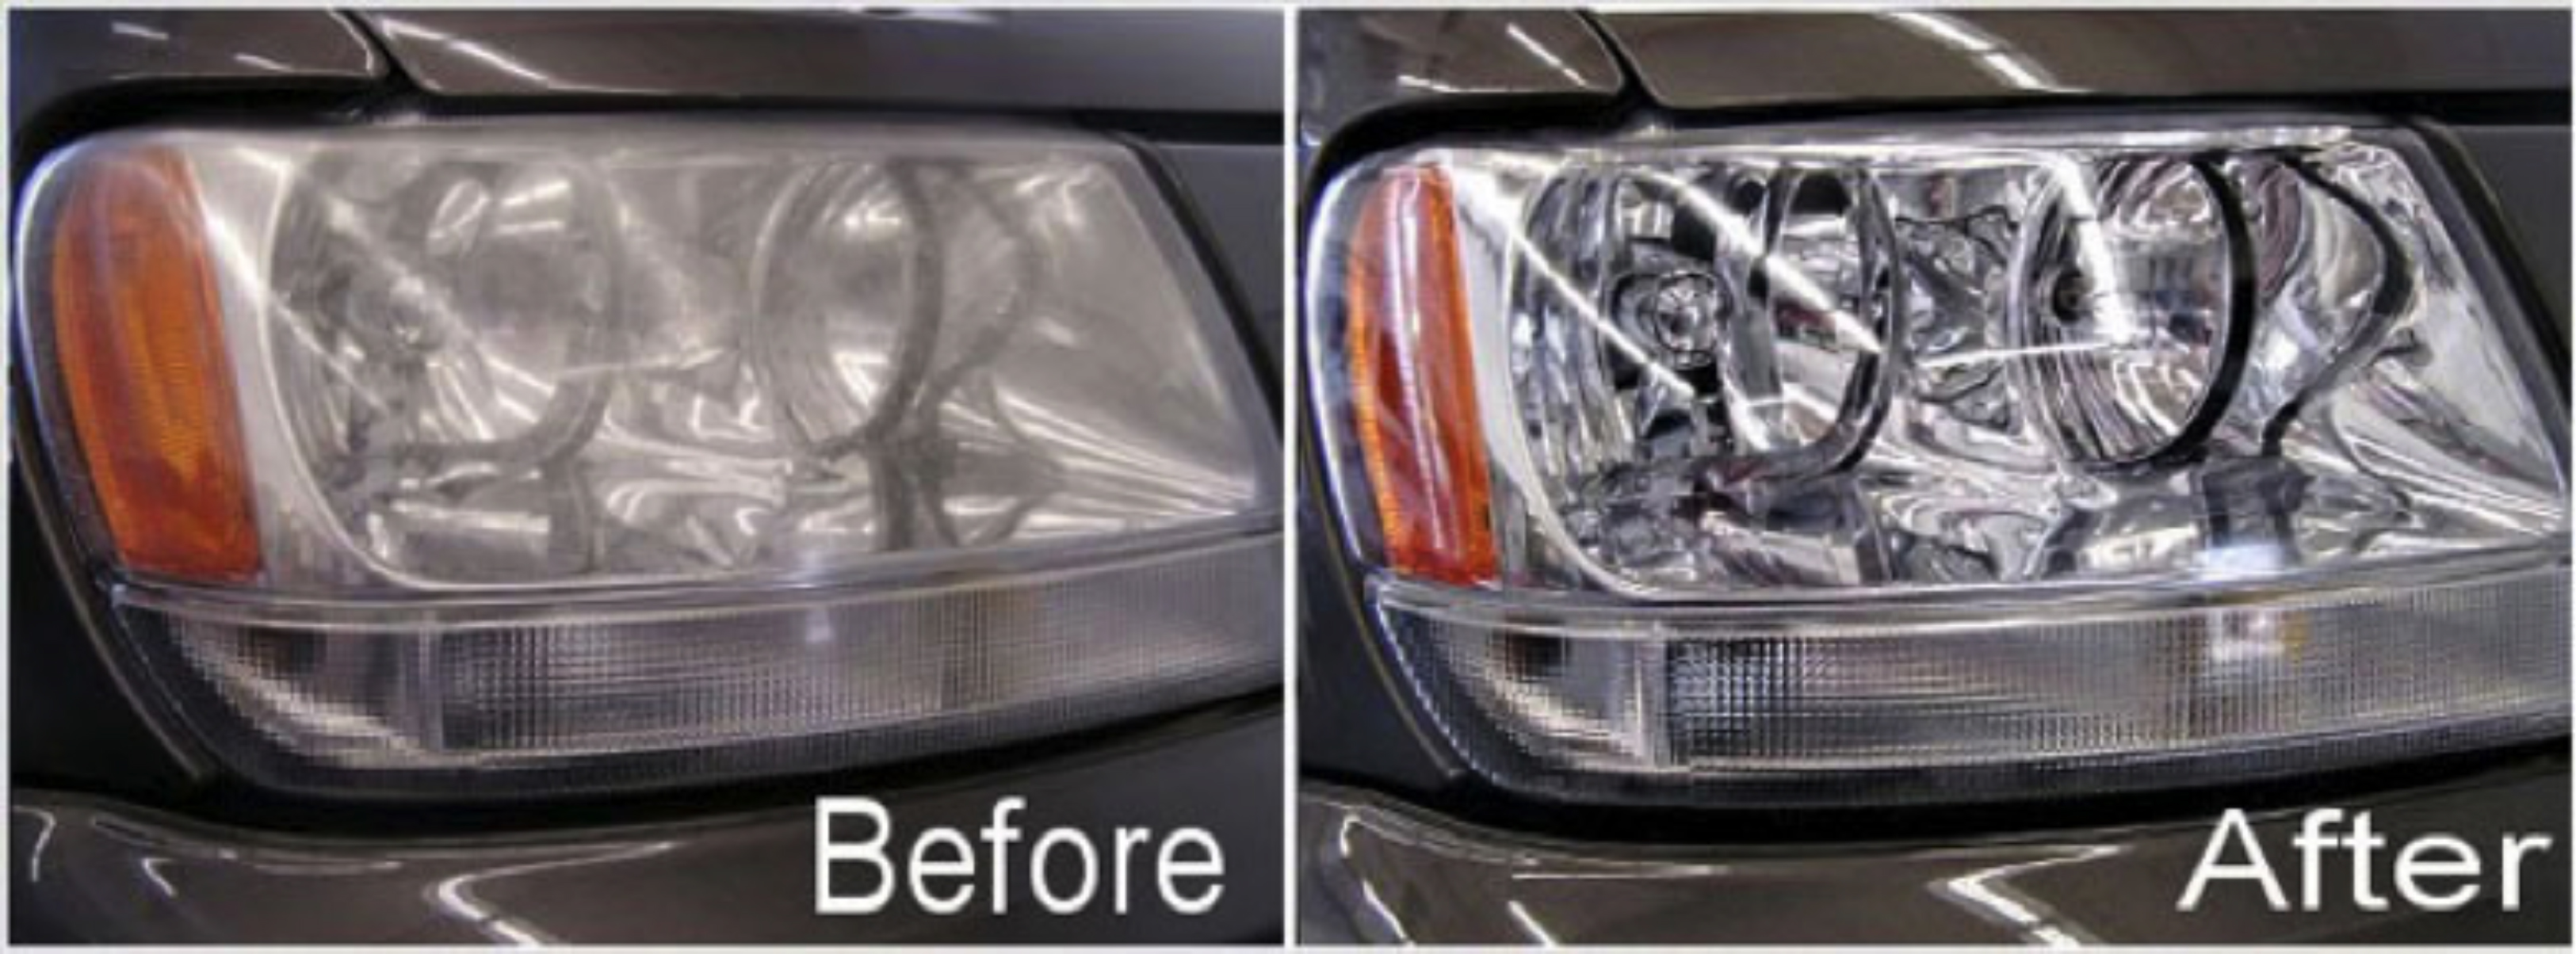 Before Amp After A M Mobile Detail